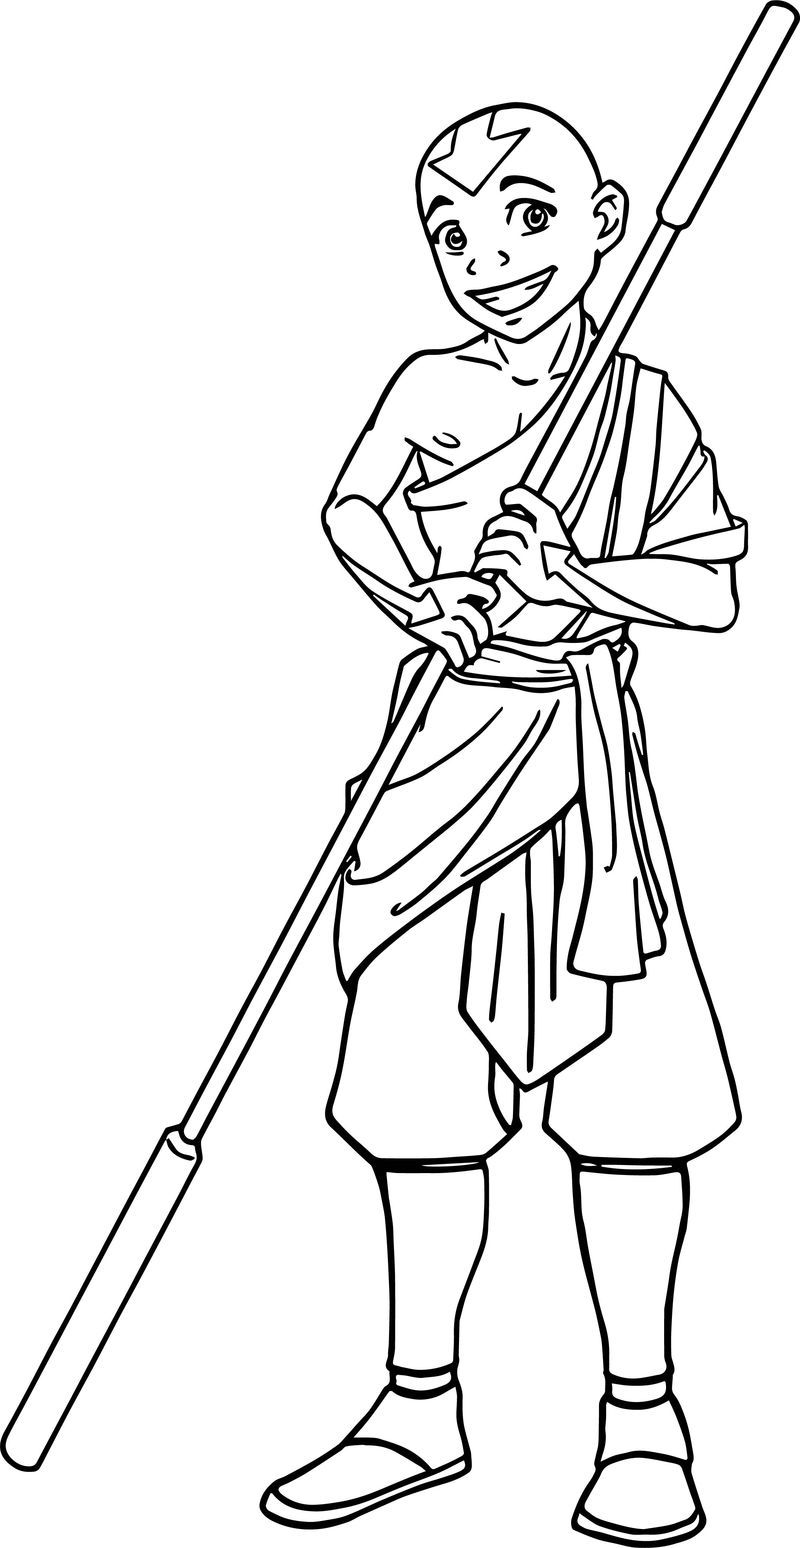 Aang Commission Amiraelizabeth Dsnou Avatar Aang Coloring Page Cartoon Coloring Pages Avatar Aang Hello Kitty Colouring Pages